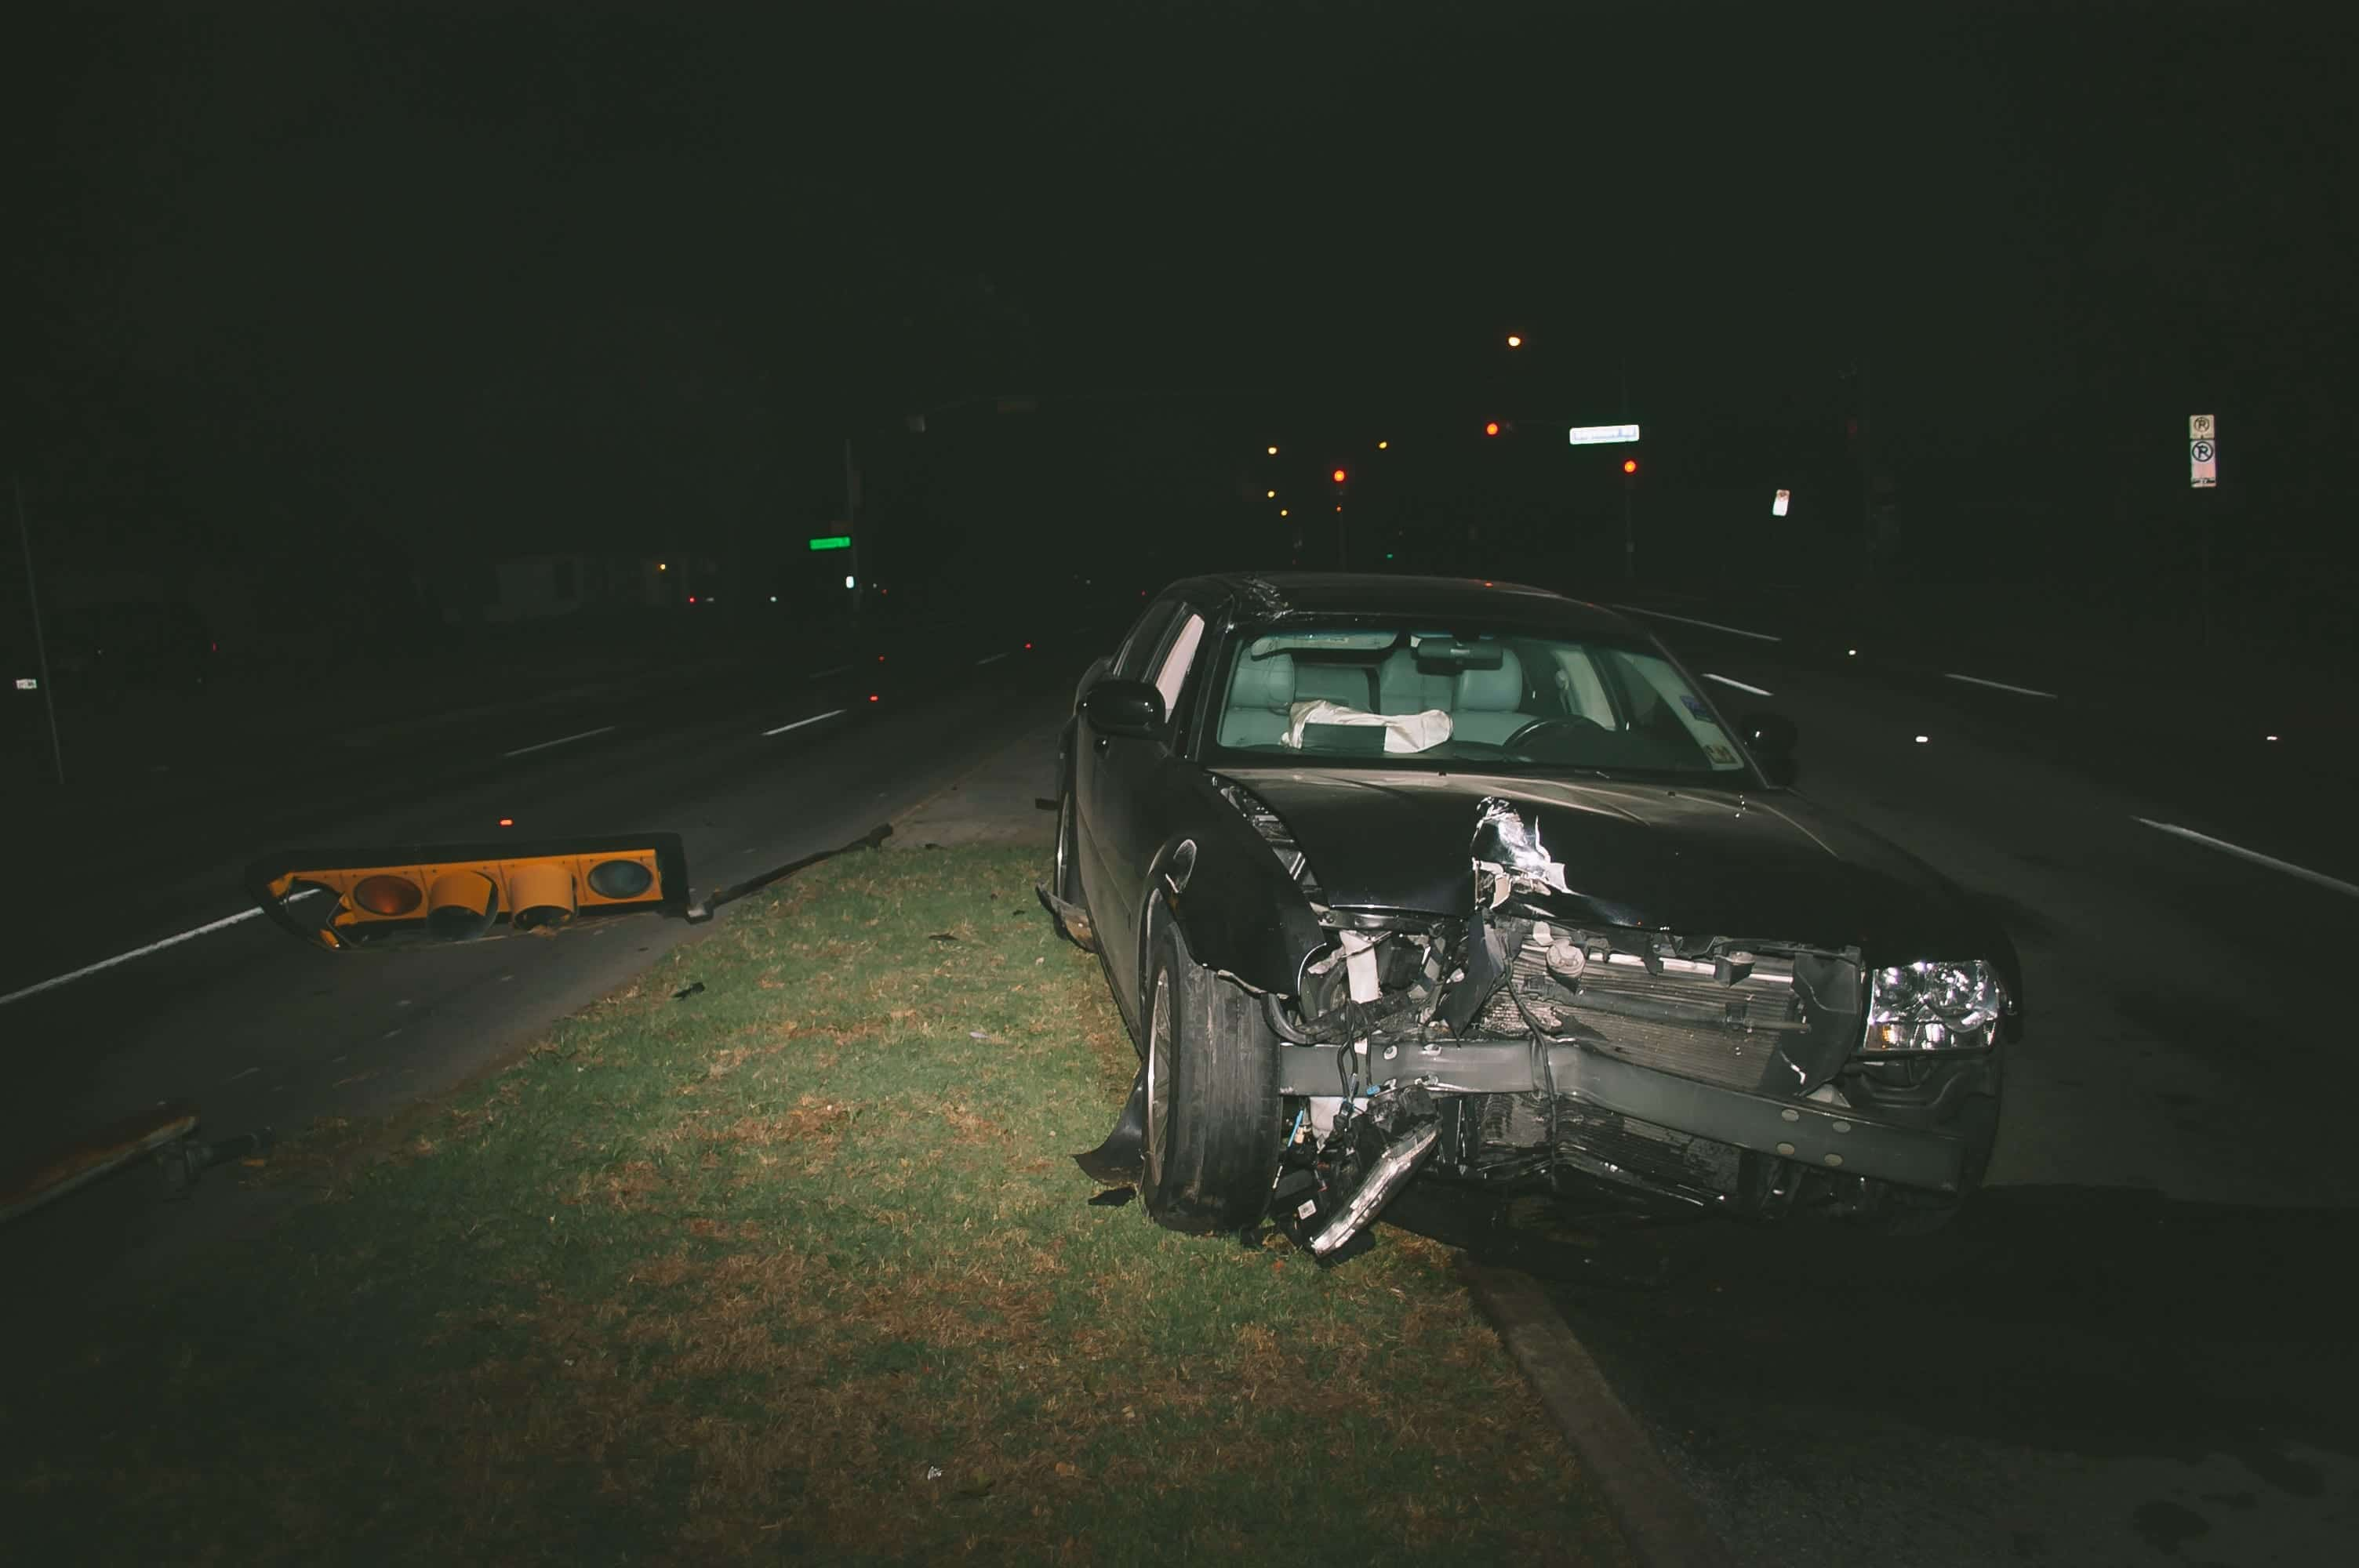 Car accident at night showing a badly damaged car; image by Matthew T. Rader, via Unsplash.com.